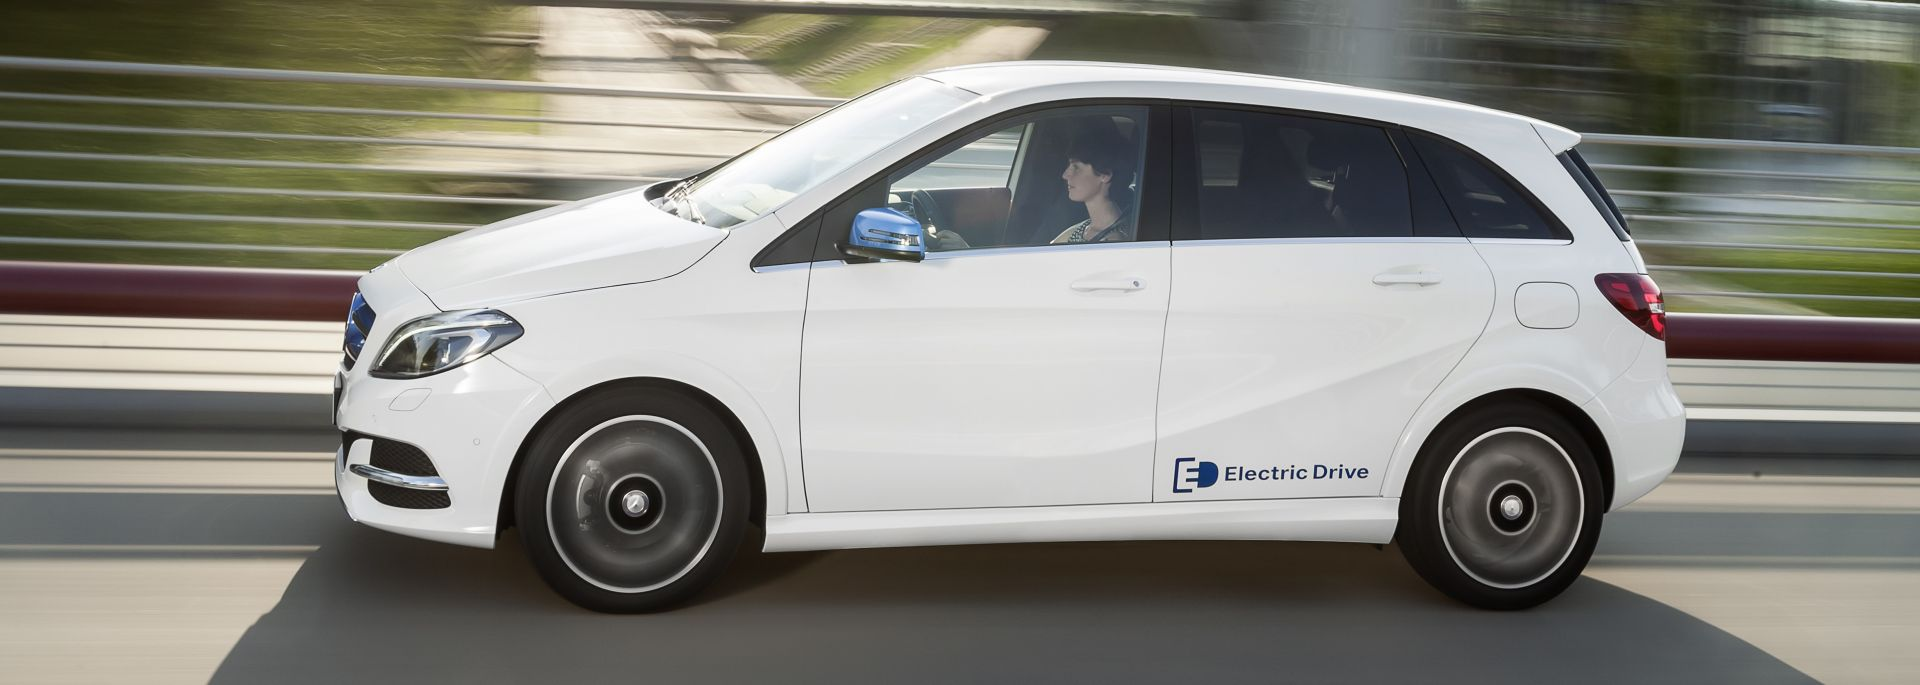 Mercedes benz b klasse electric drive lueg for How much is b service on mercedes benz